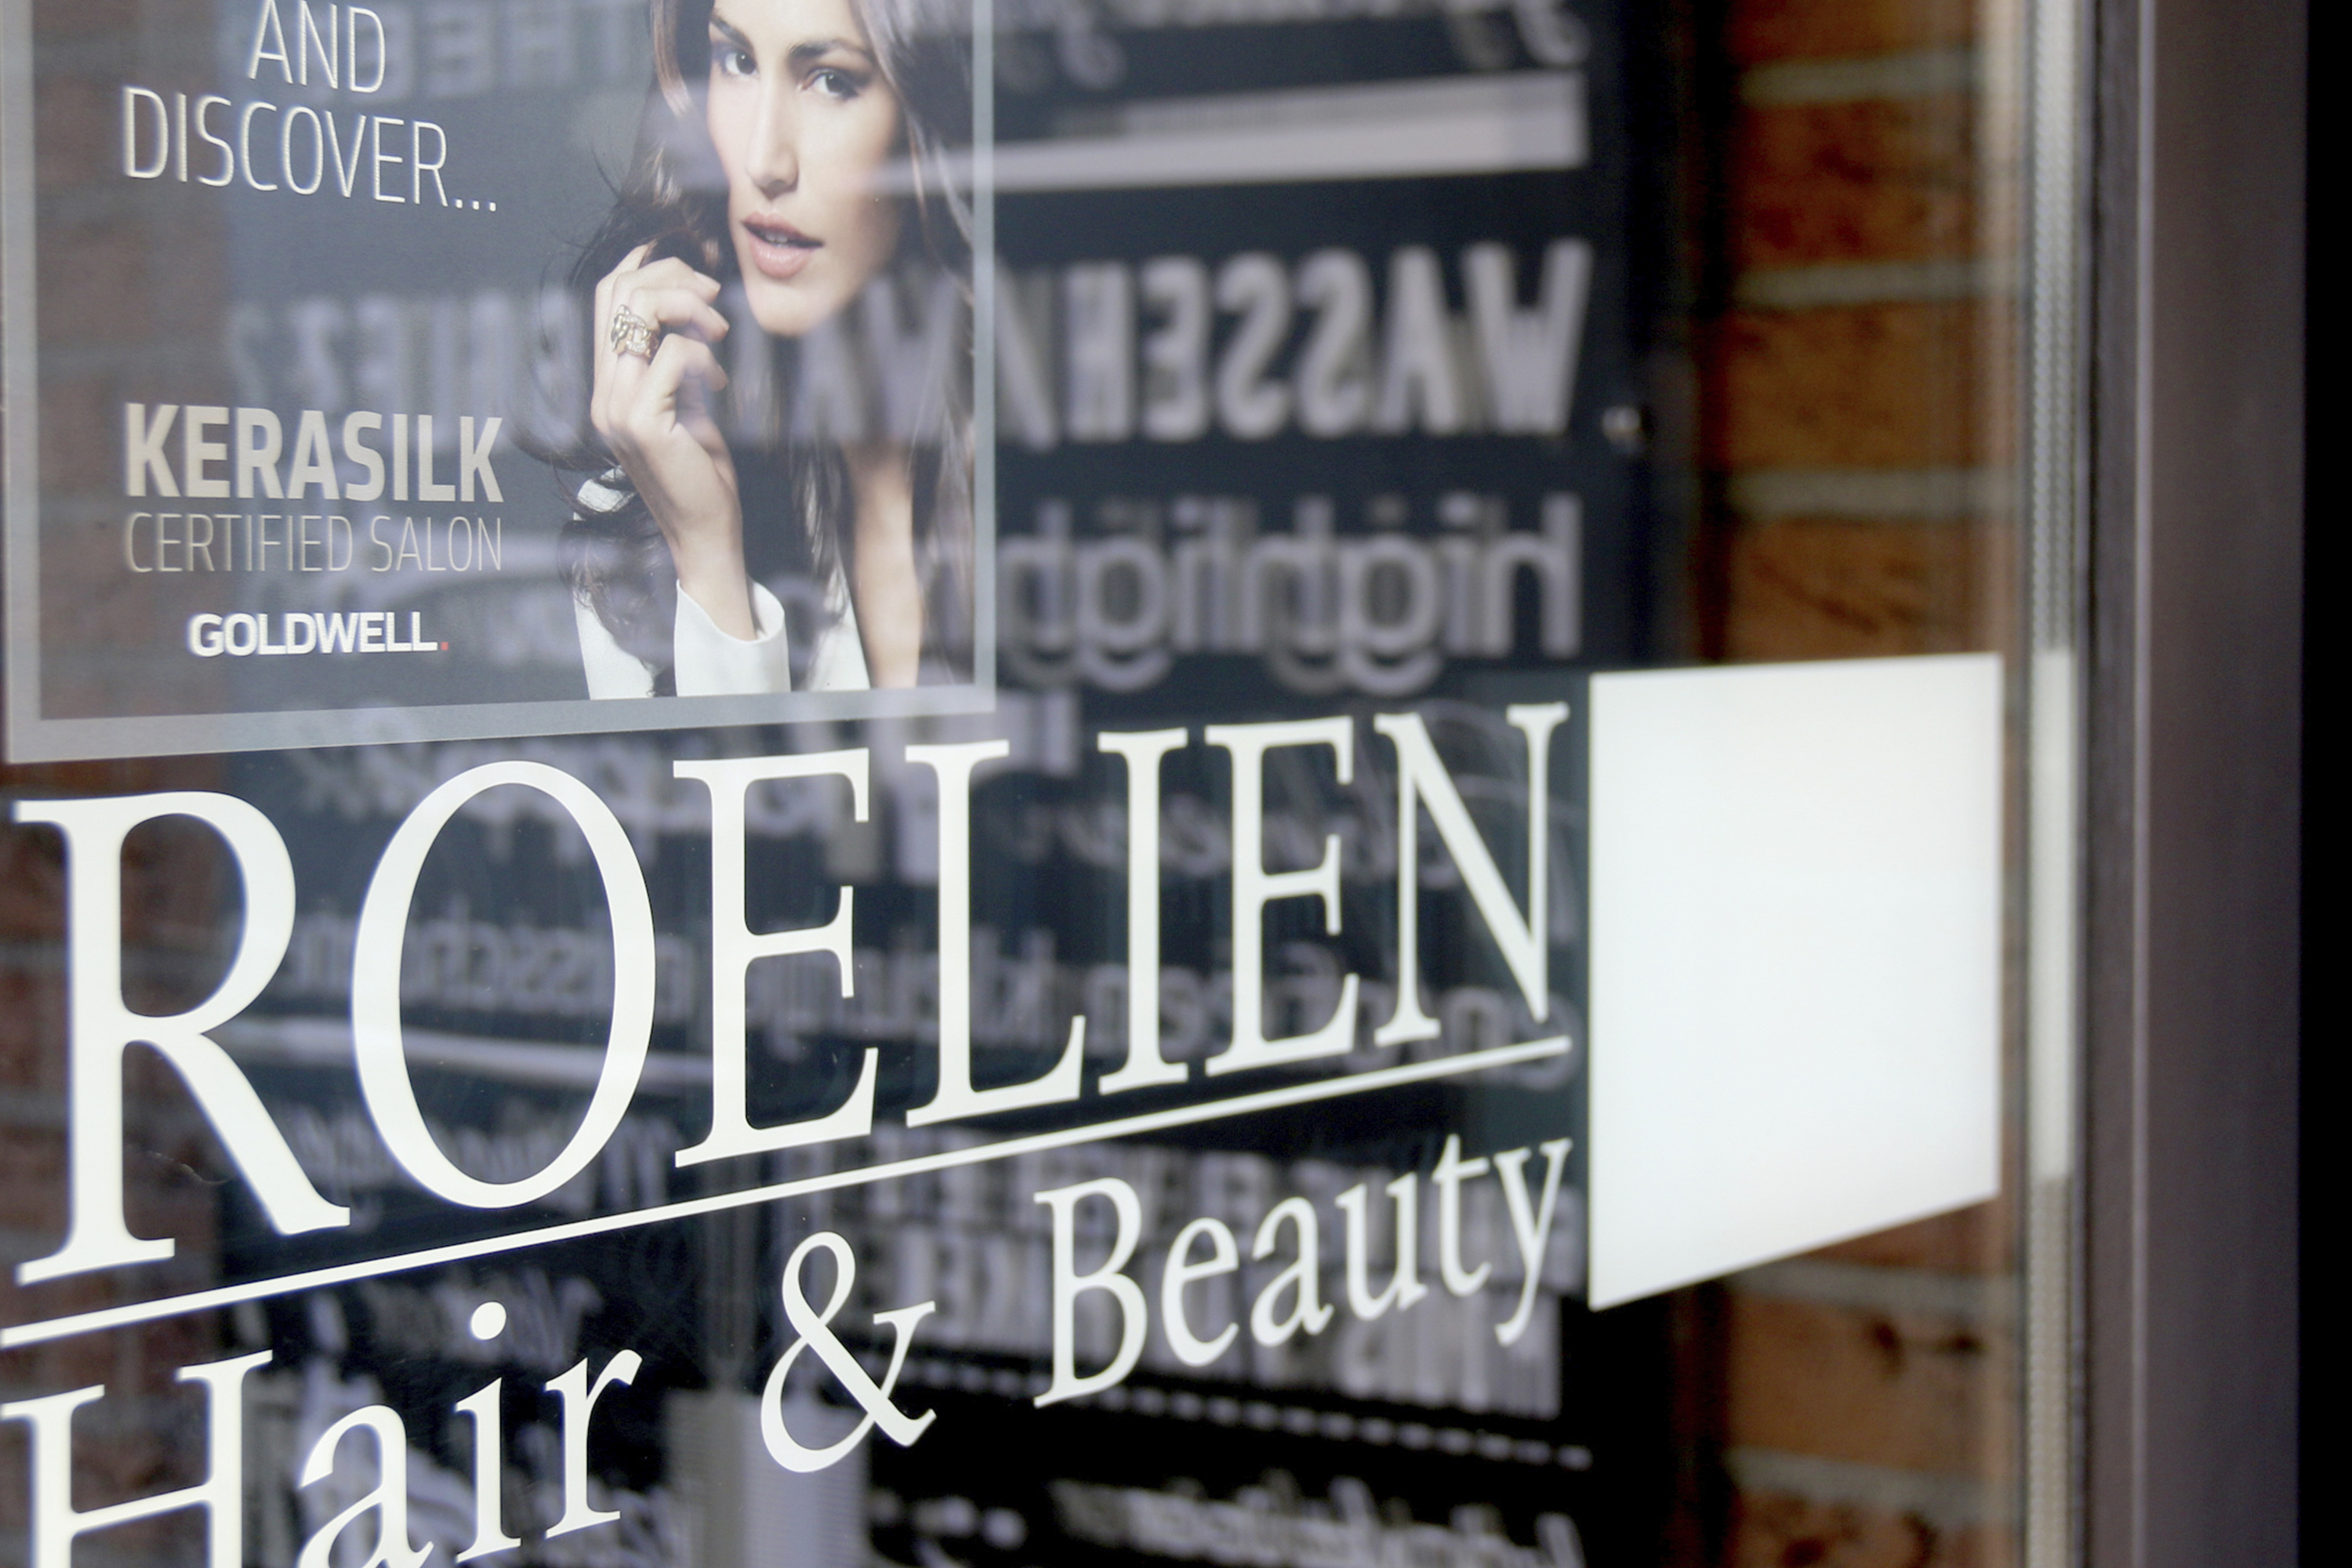 Roelien2018_salon1